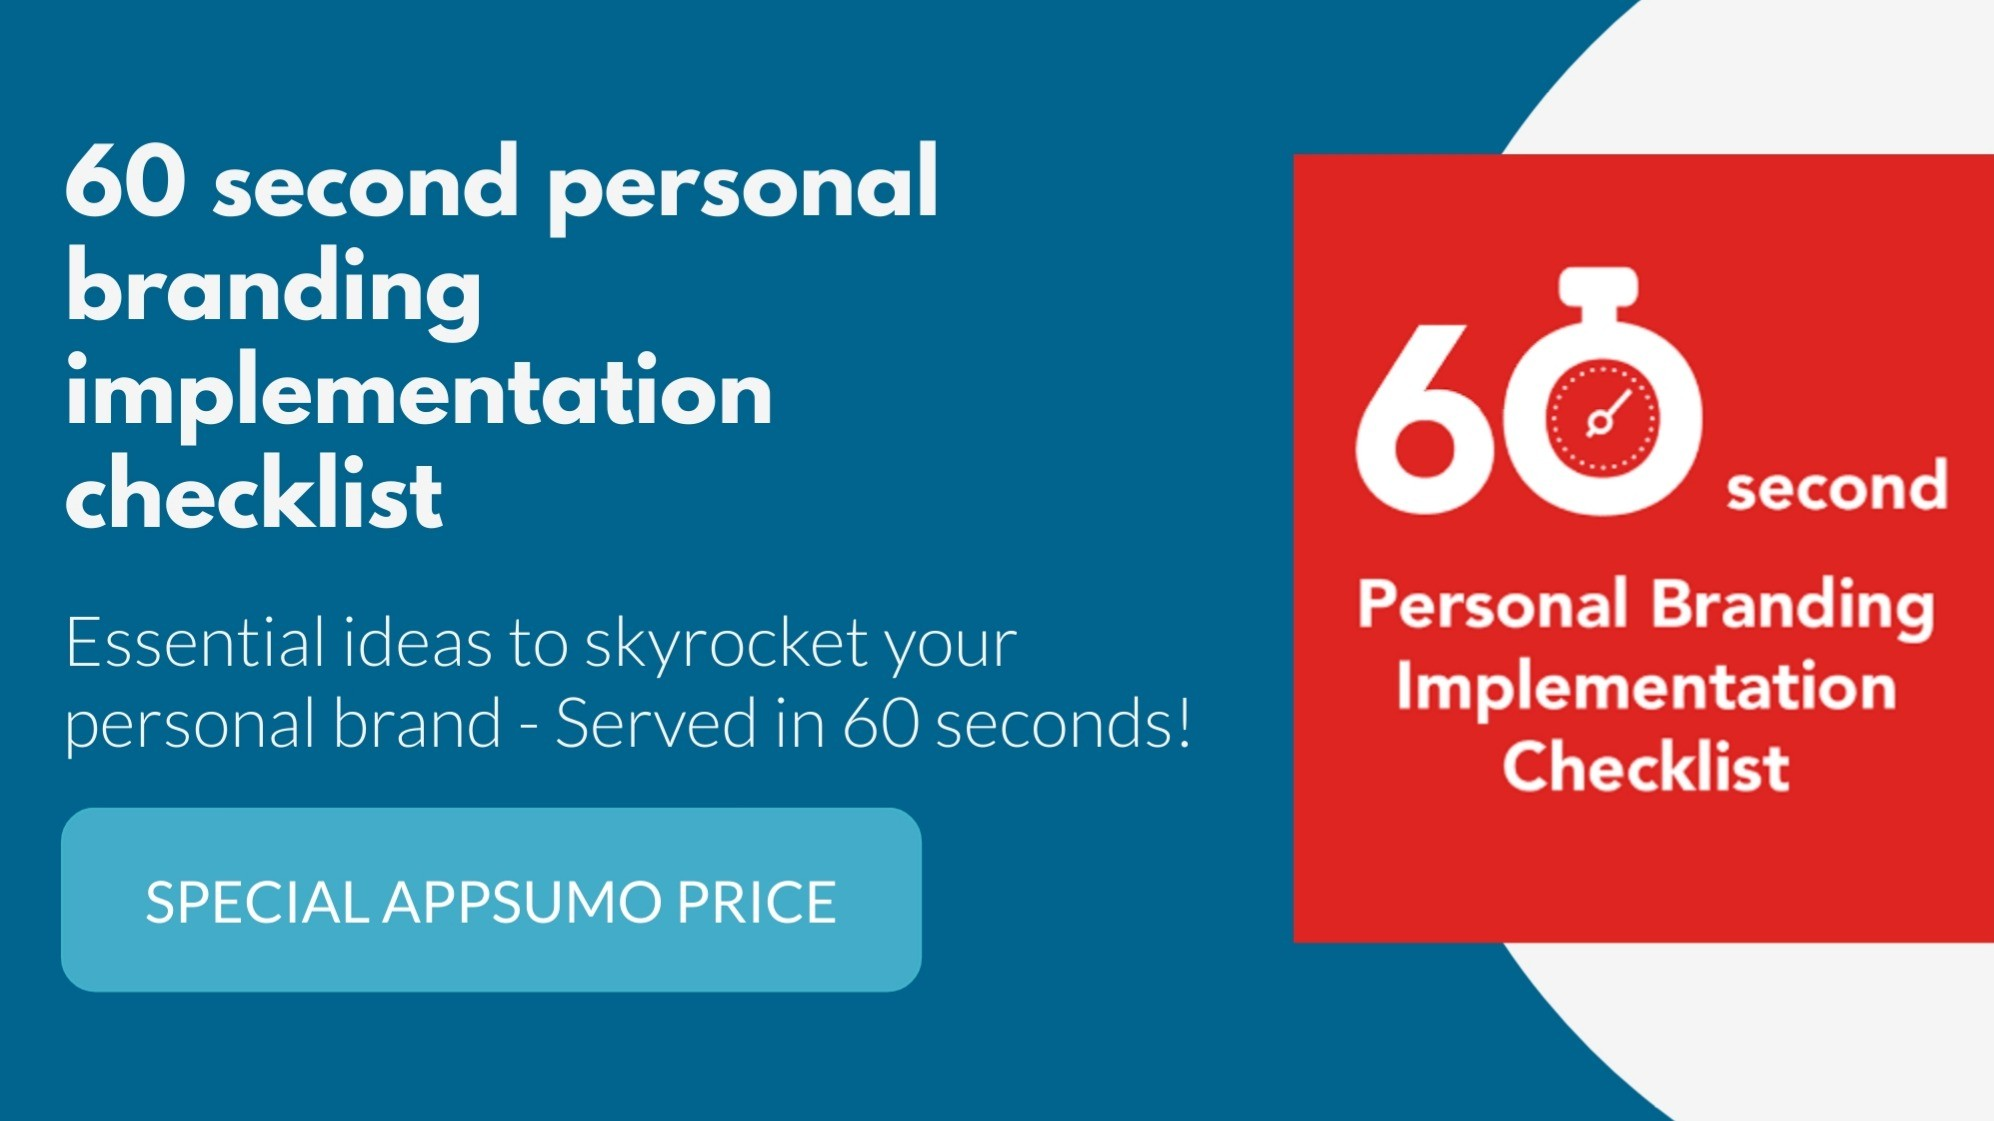 AppSumo Deal for The 60-Second Personal Branding Implementation Checklist